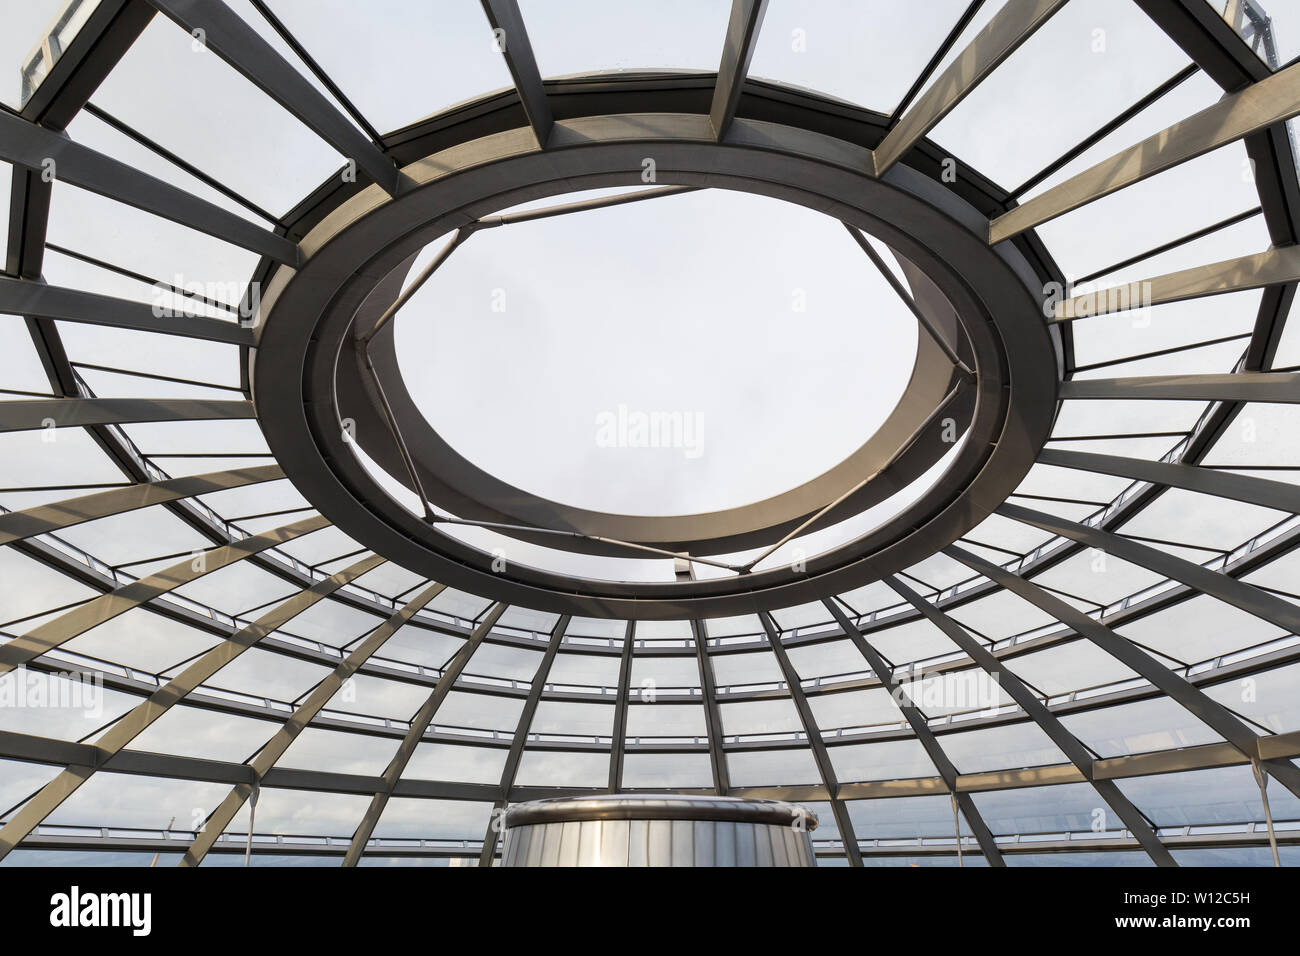 Empty top at the futuristic glass dome at the Reichstag (German parliament) building in Berlin, Germany. It was designed by architect Norman Foster. Stock Photo